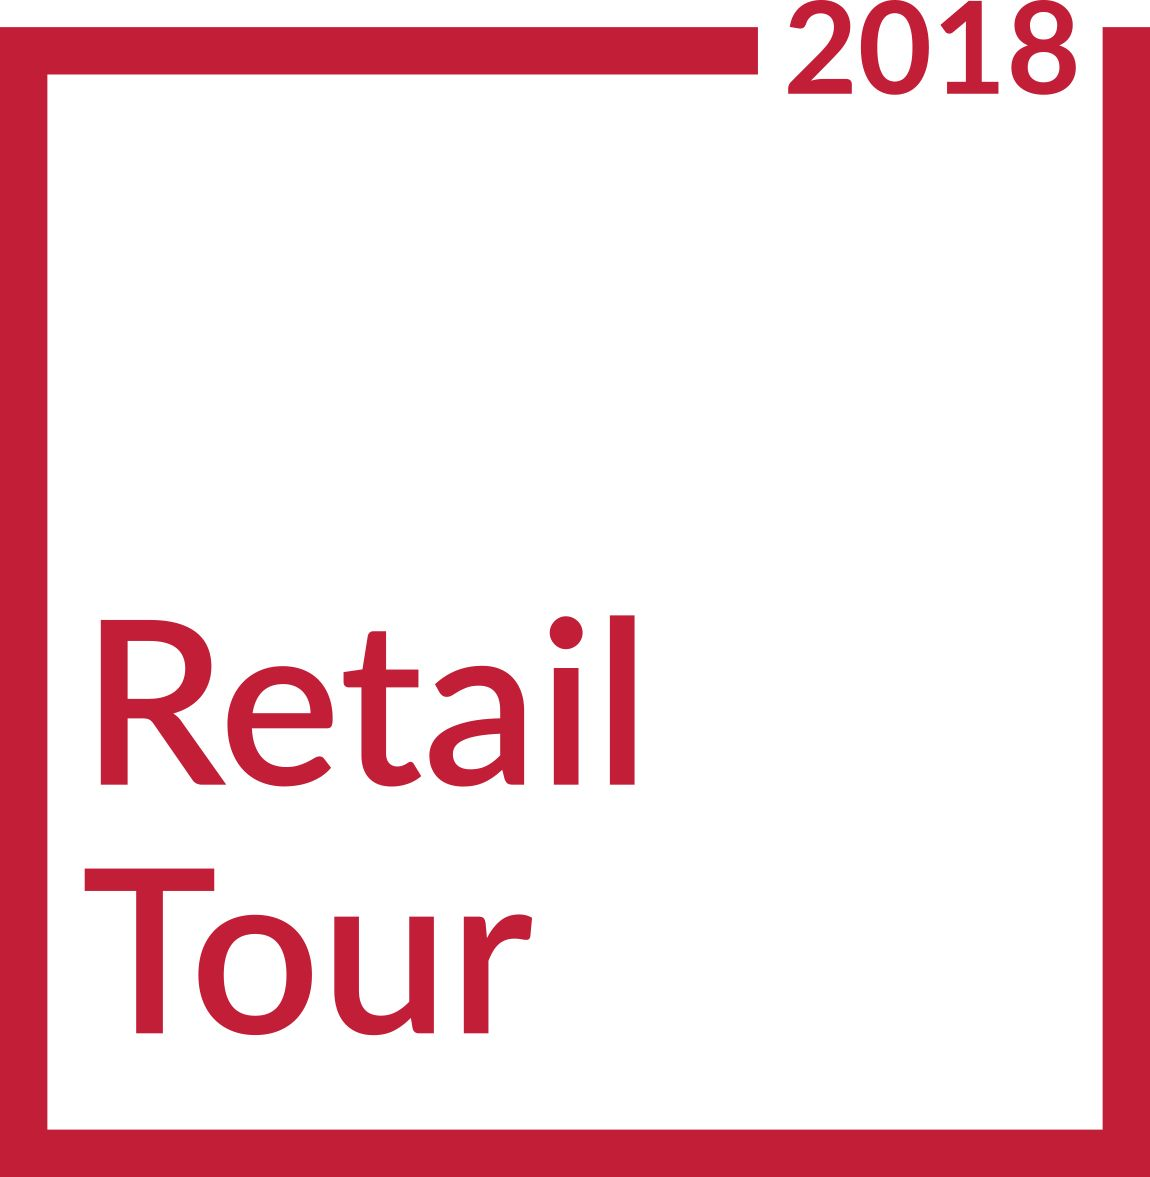 Retail Tour - Focus Tech & Digital - Nuova Data!